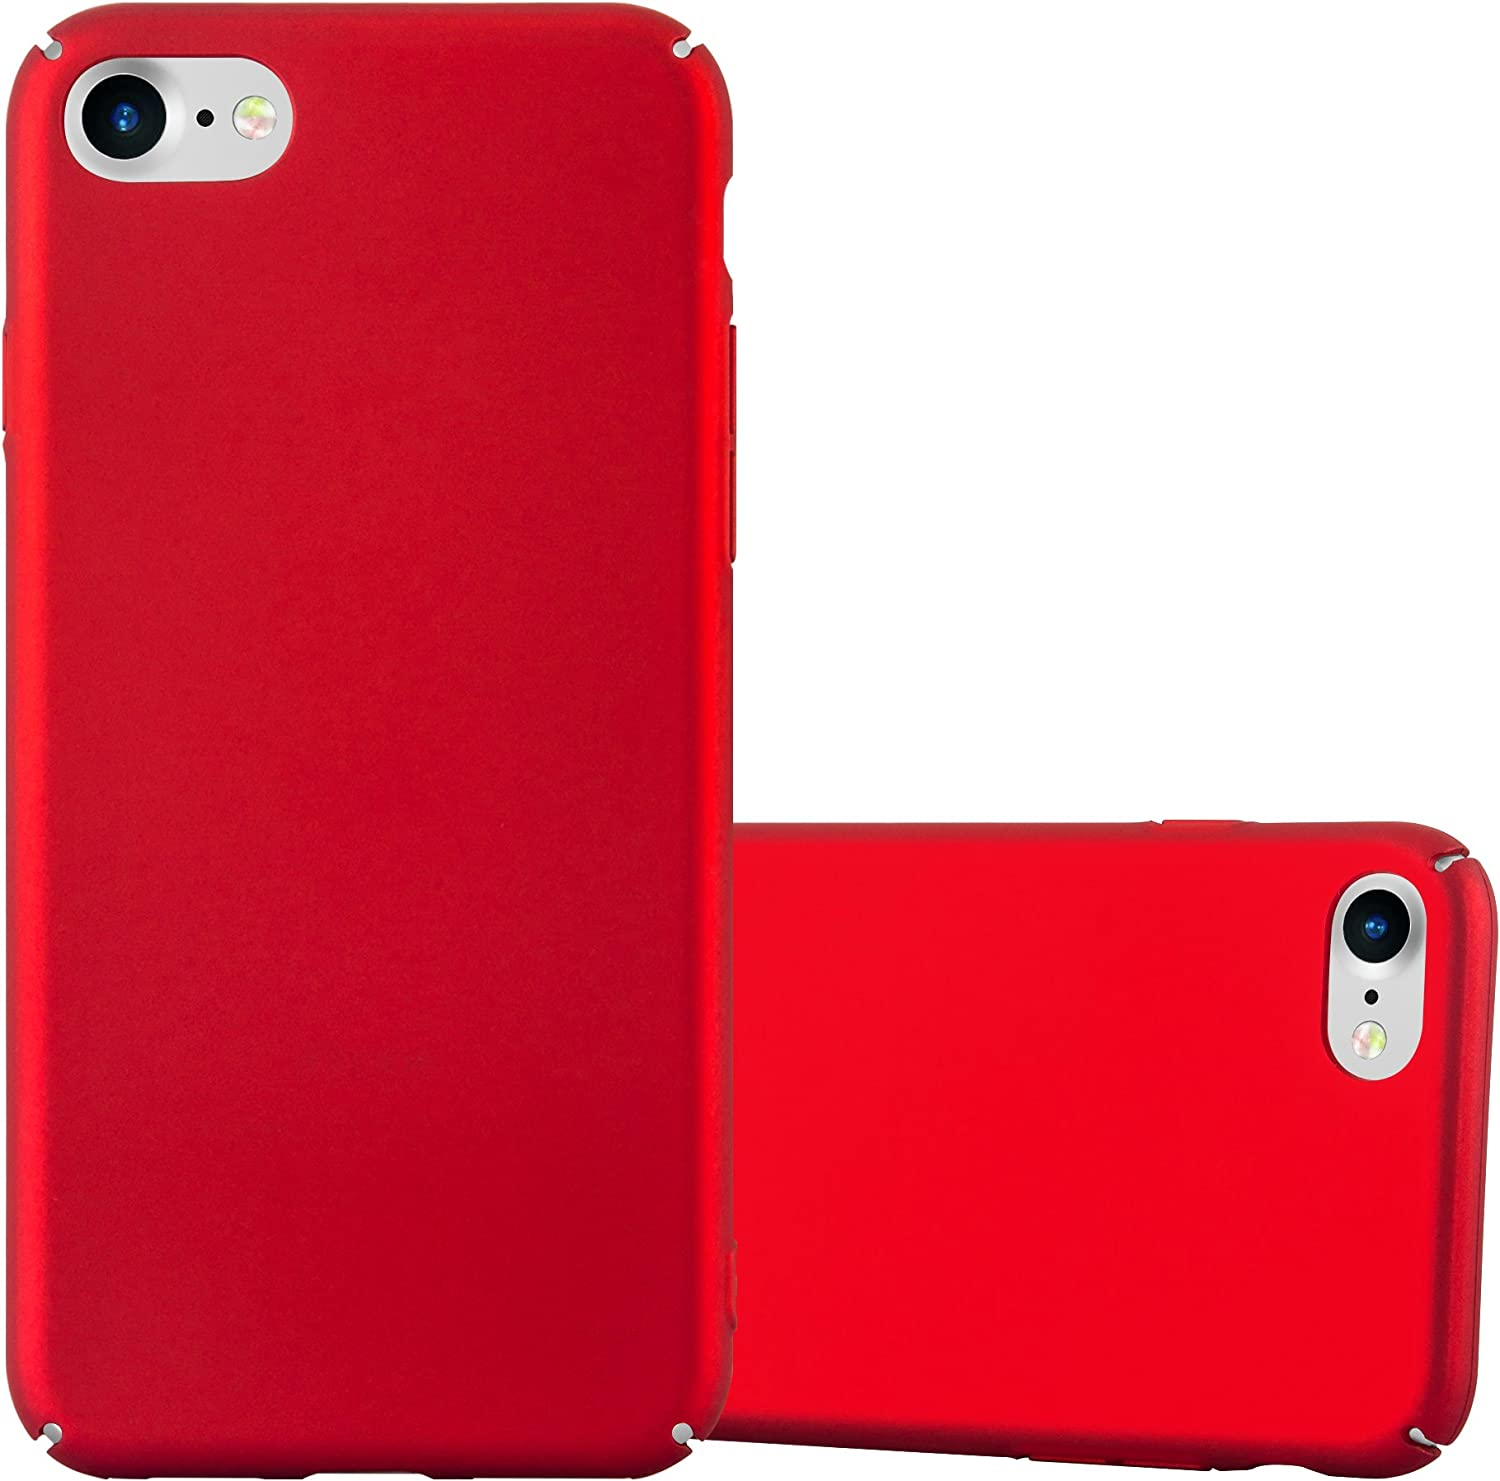 Cadorabo Case Compatible with Apple iPhone 7 / iPhone 7S / iPhone 8 in Metal RED - Shockproof and Scratch Resistent Plastic Hard Cover - Ultra Slim Protective Shell Bumper Back Skin